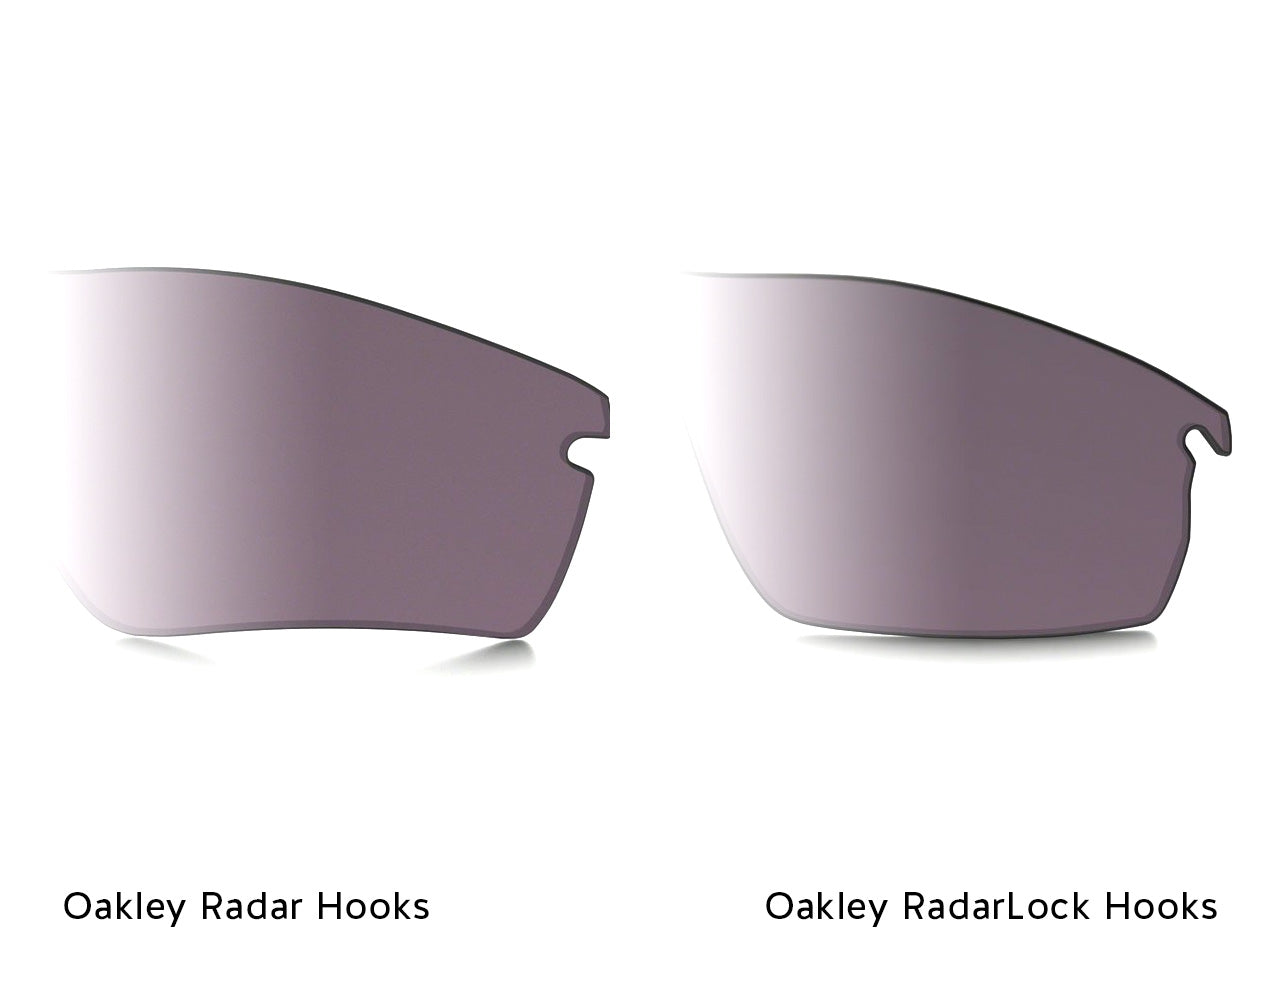 Oakley Radar Hooks (left) vs. Oakley Radarlock Hooks (right)